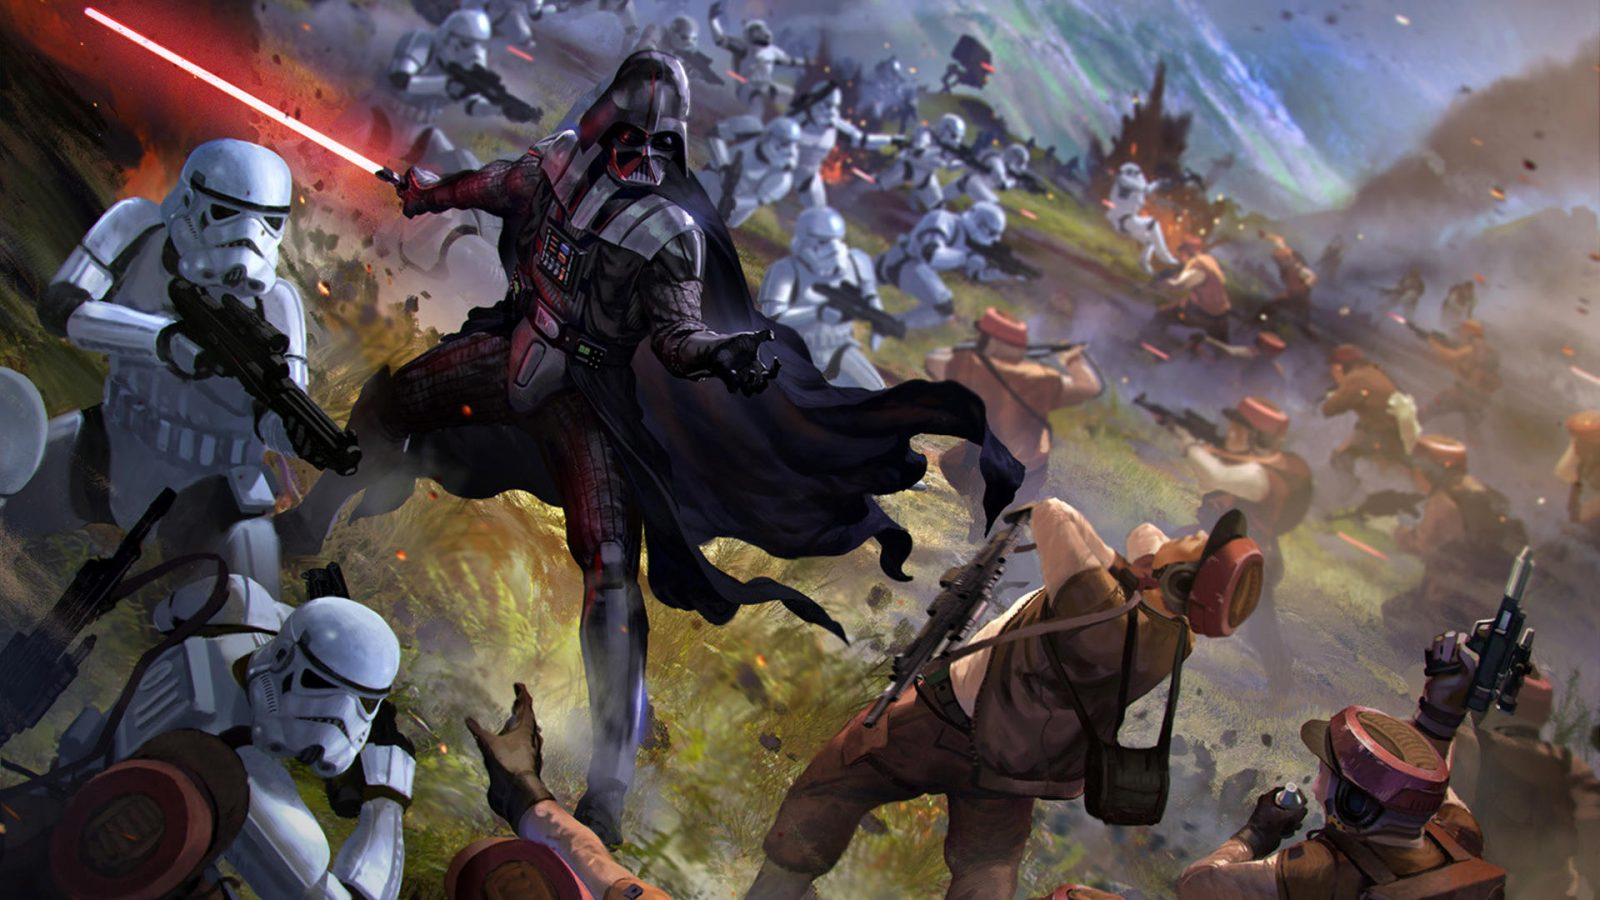 10 Star Wars Board Games You Should Play Before Seeing Rise of Skywalker